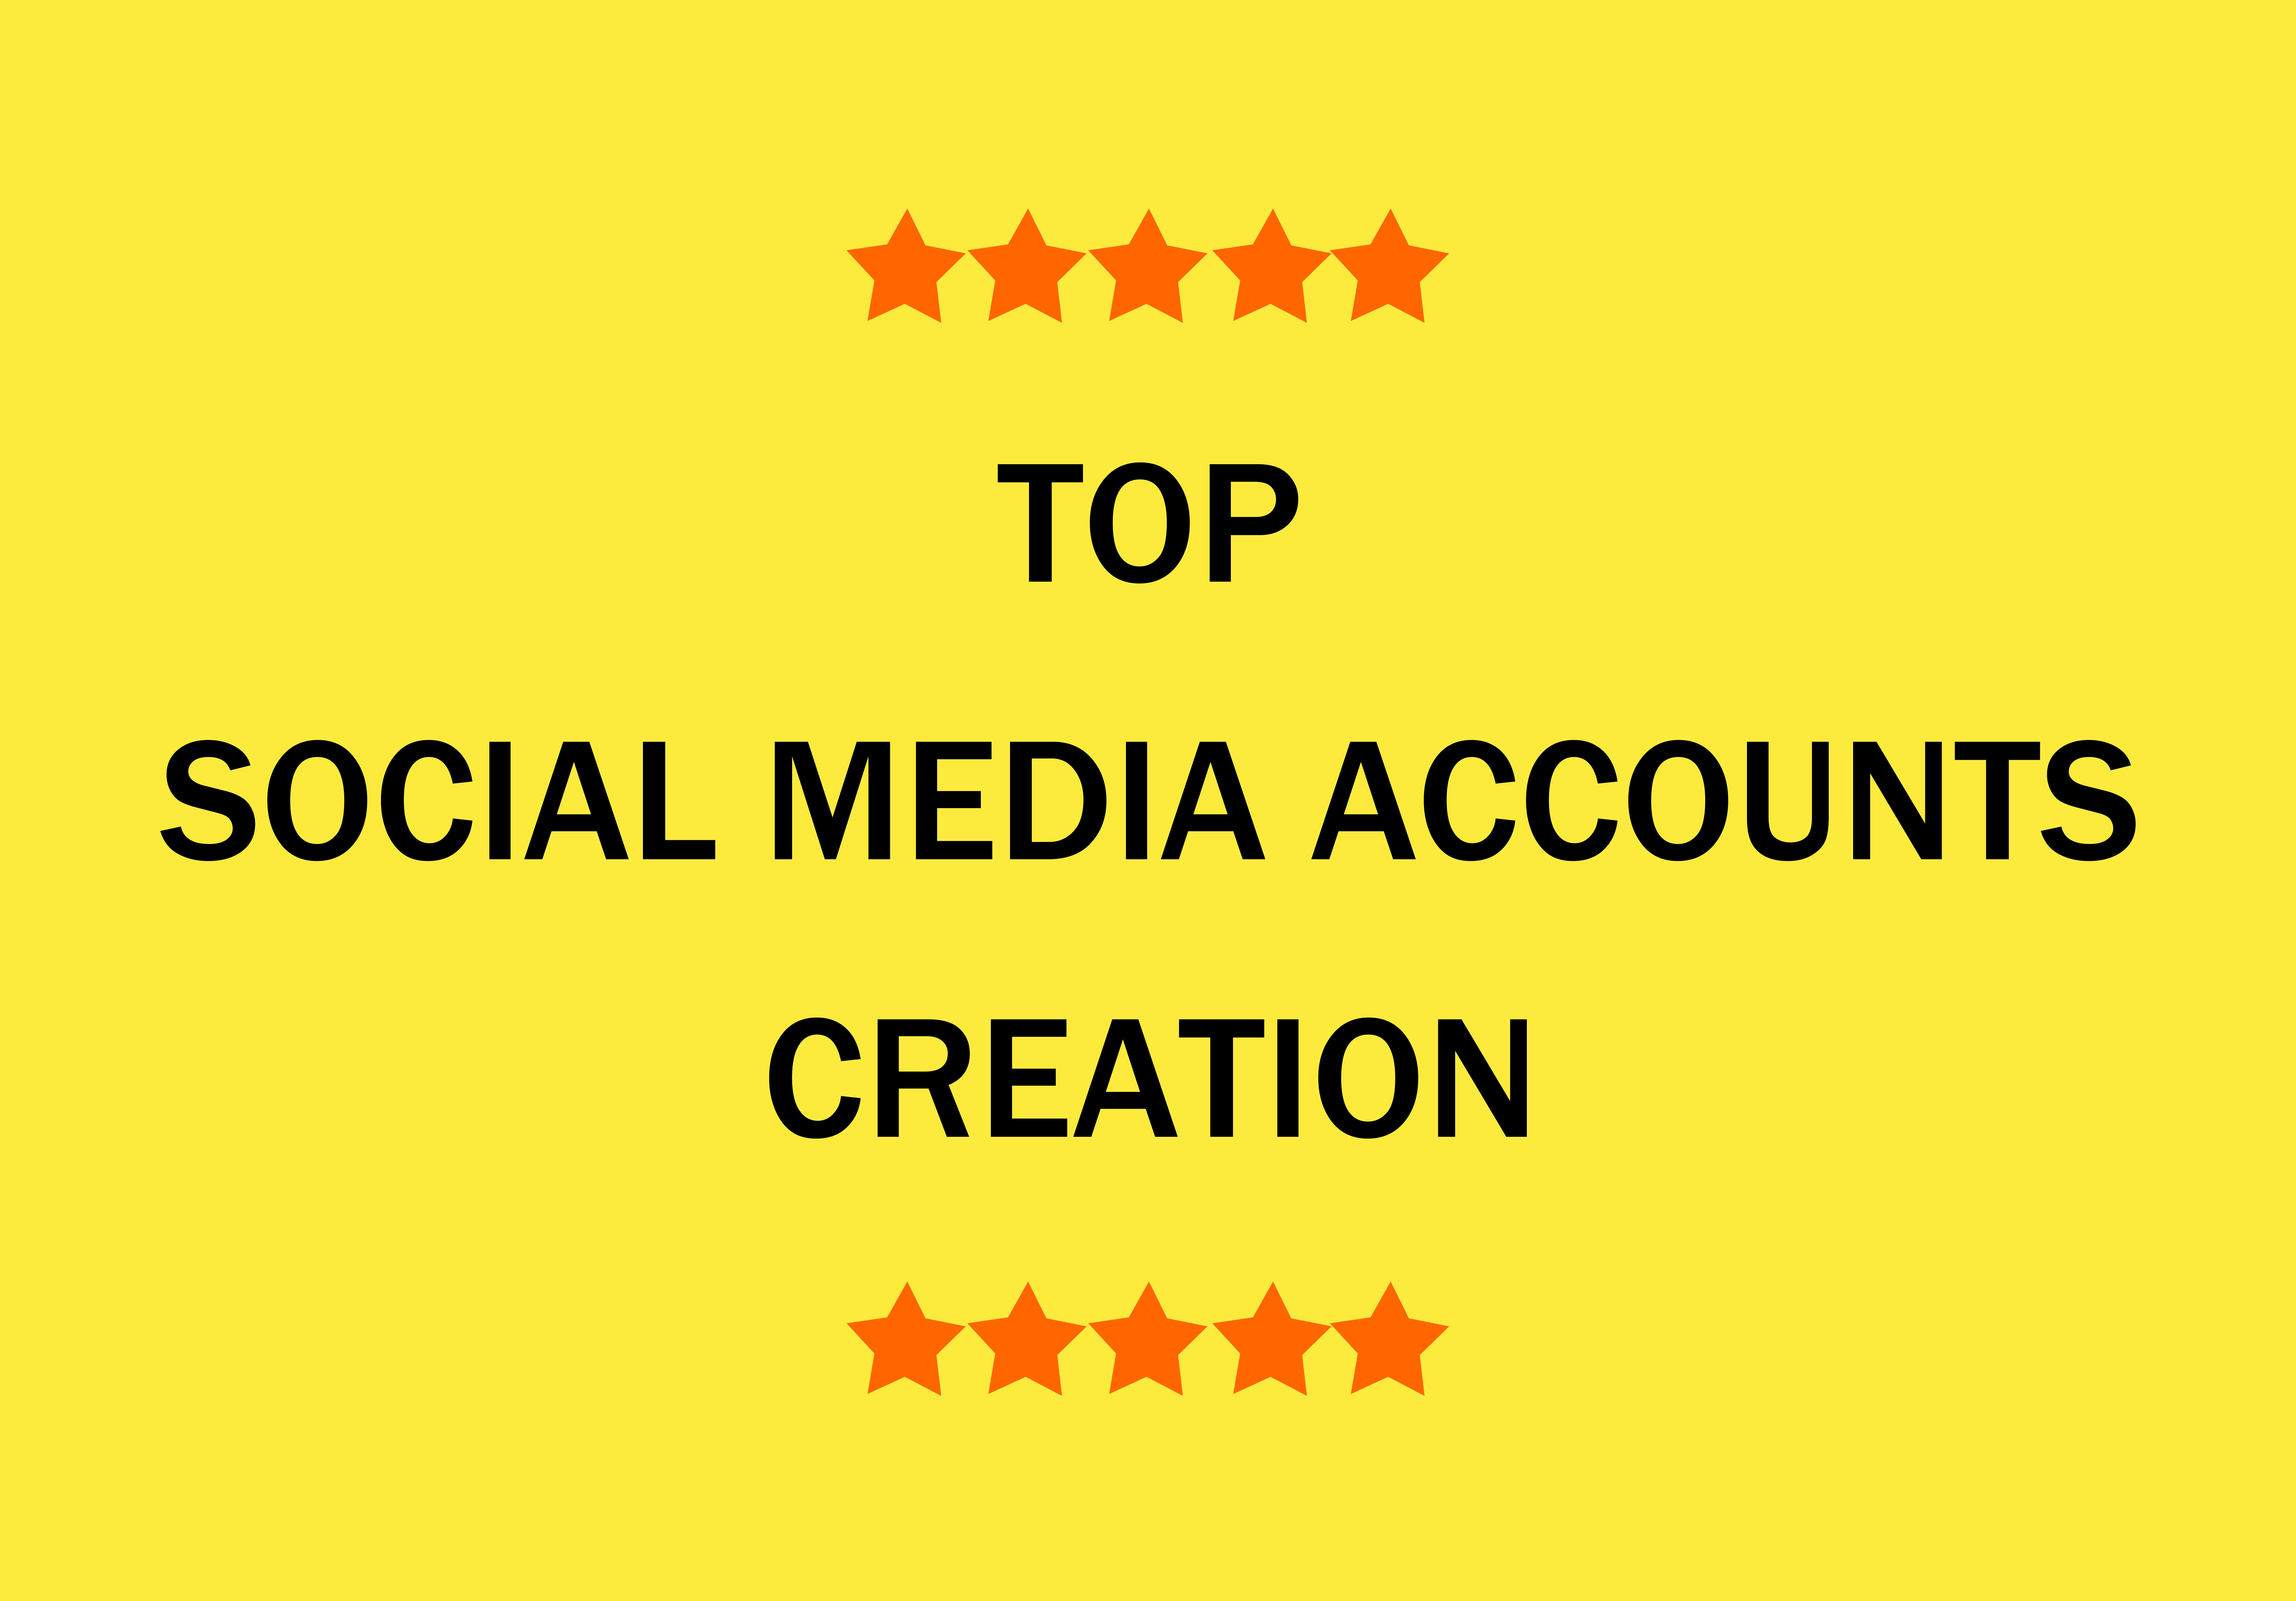 Create Top 15 Profile/Account For Brand Creation